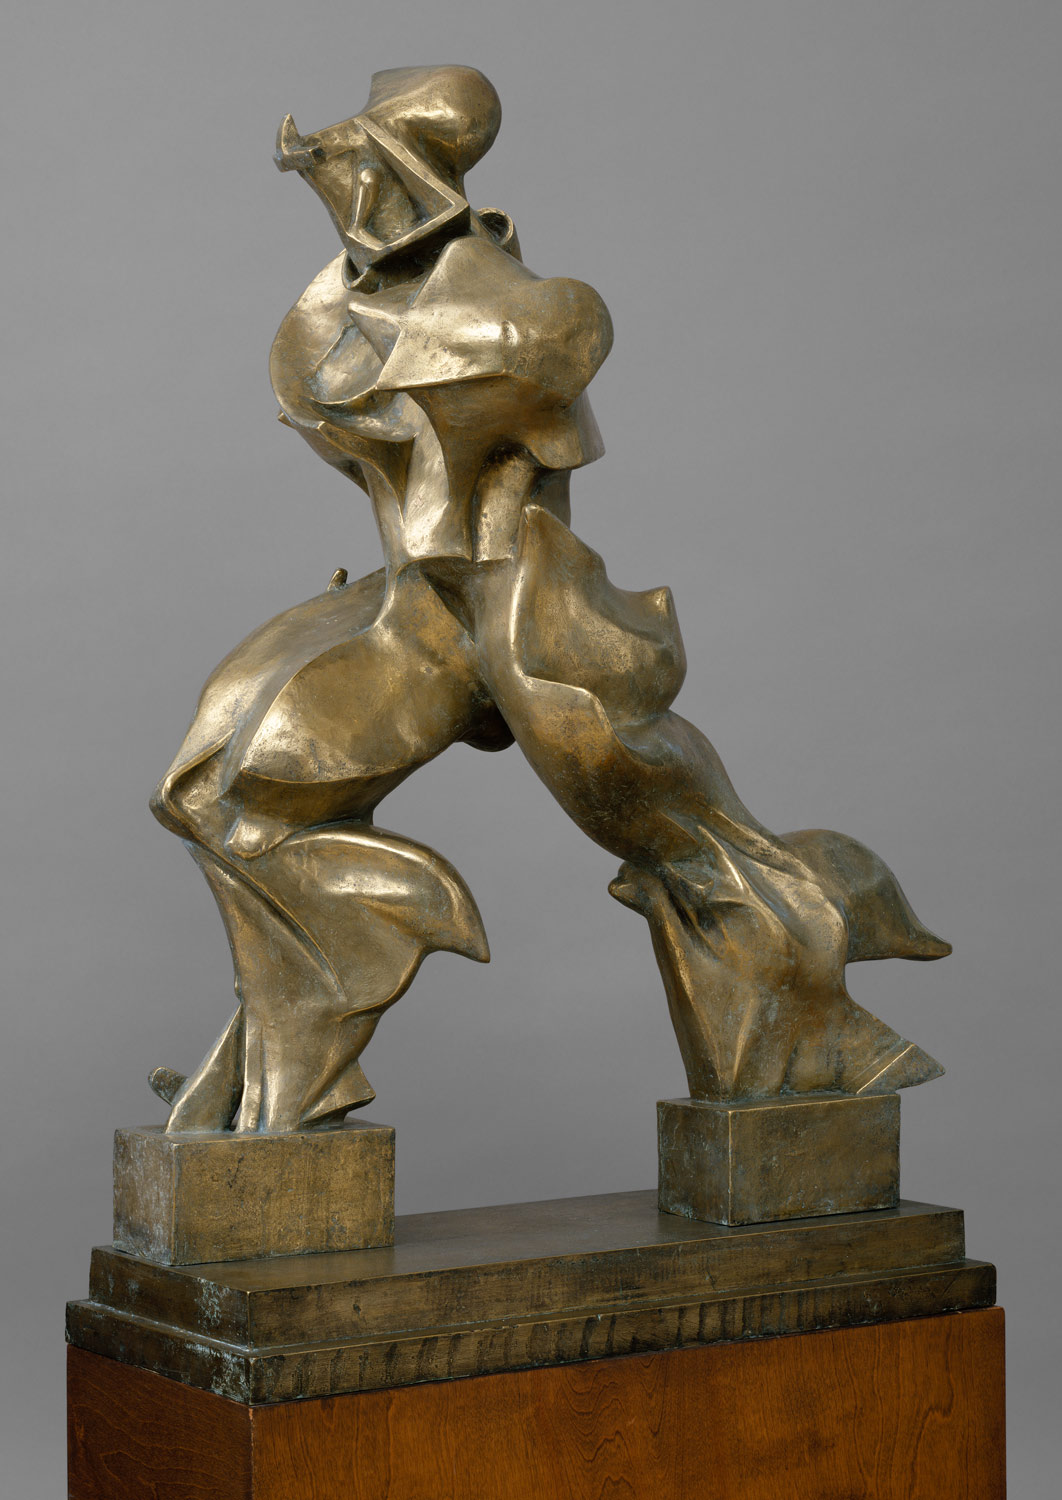 unique forms of continuity in space by umberto boccioni